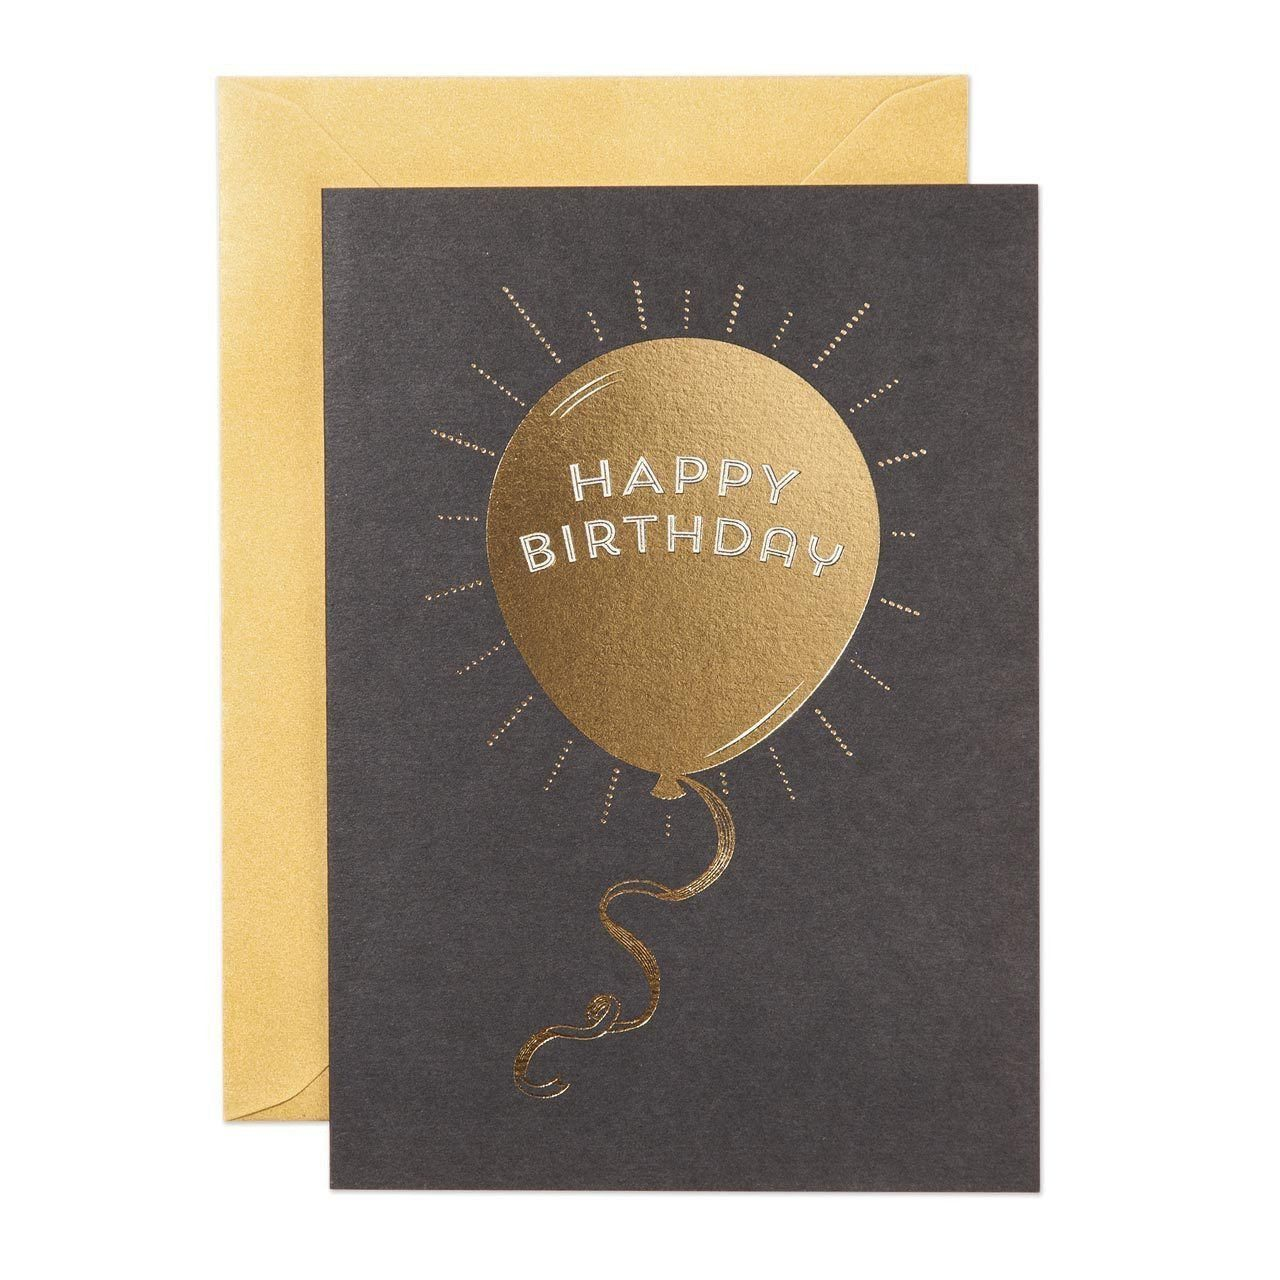 Birthday Balloon Greeting Card - Chase and Wonder - Proudly Made in Britain